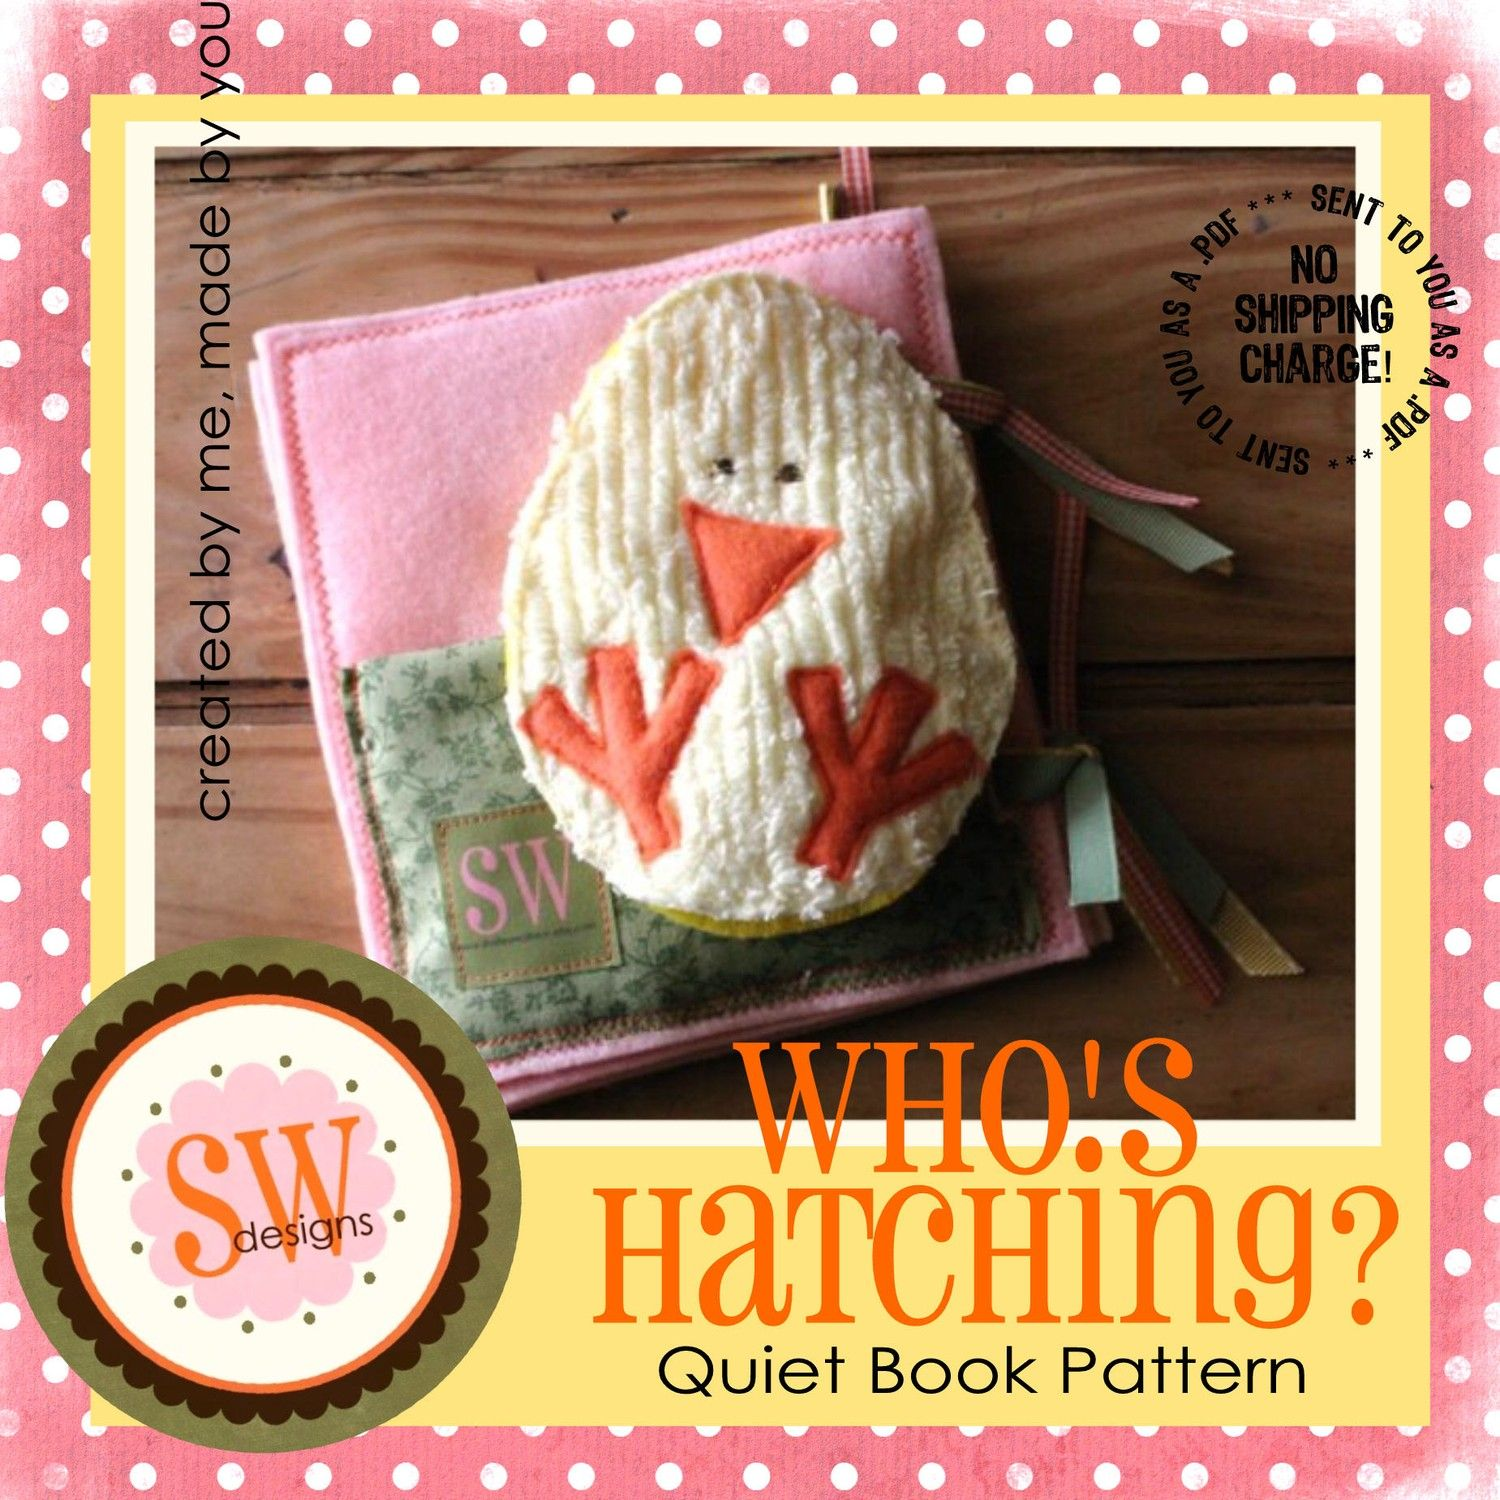 Pattern for whos hatching quiet book digital pdf download forumfinder Gallery